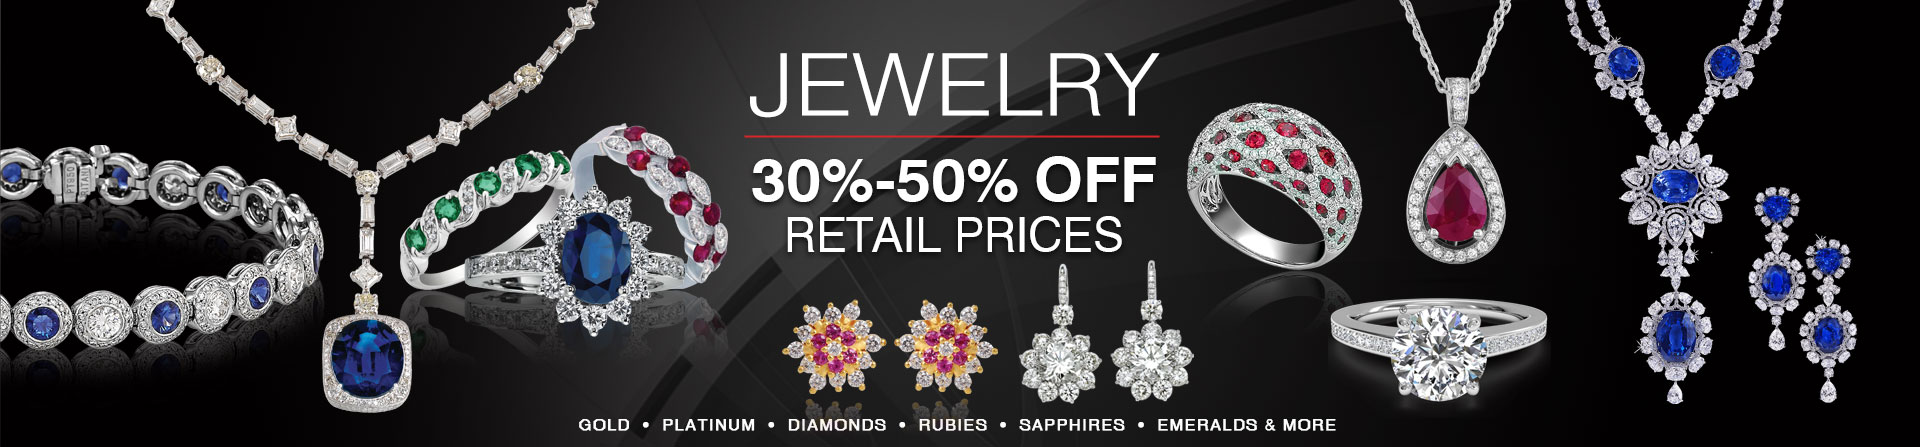 JEWELRY 30% to 50% OFF RETAIL PRICE!